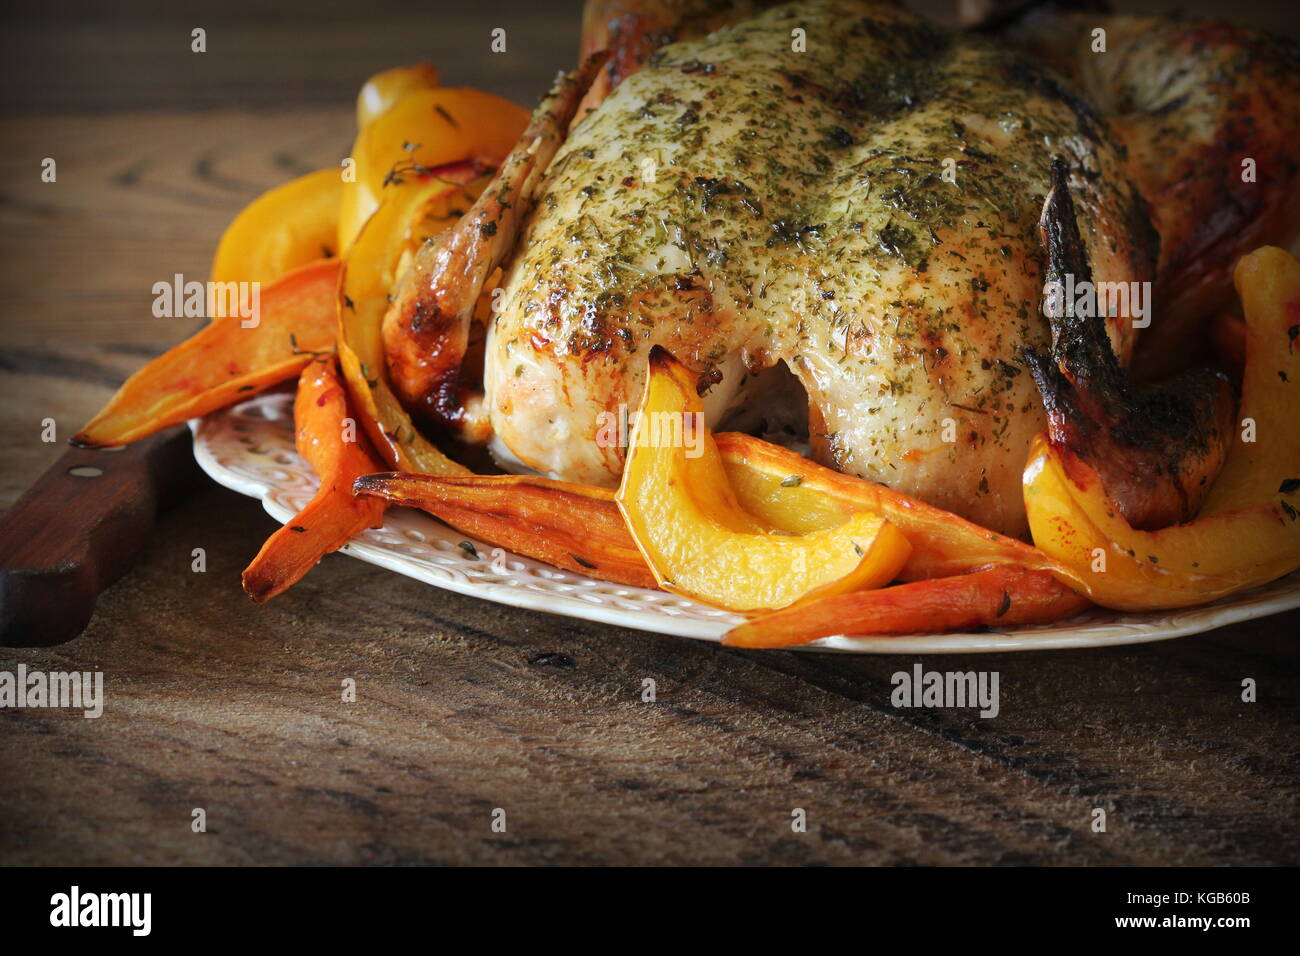 Whole roasted chicken with fall vegetables - Stock Image